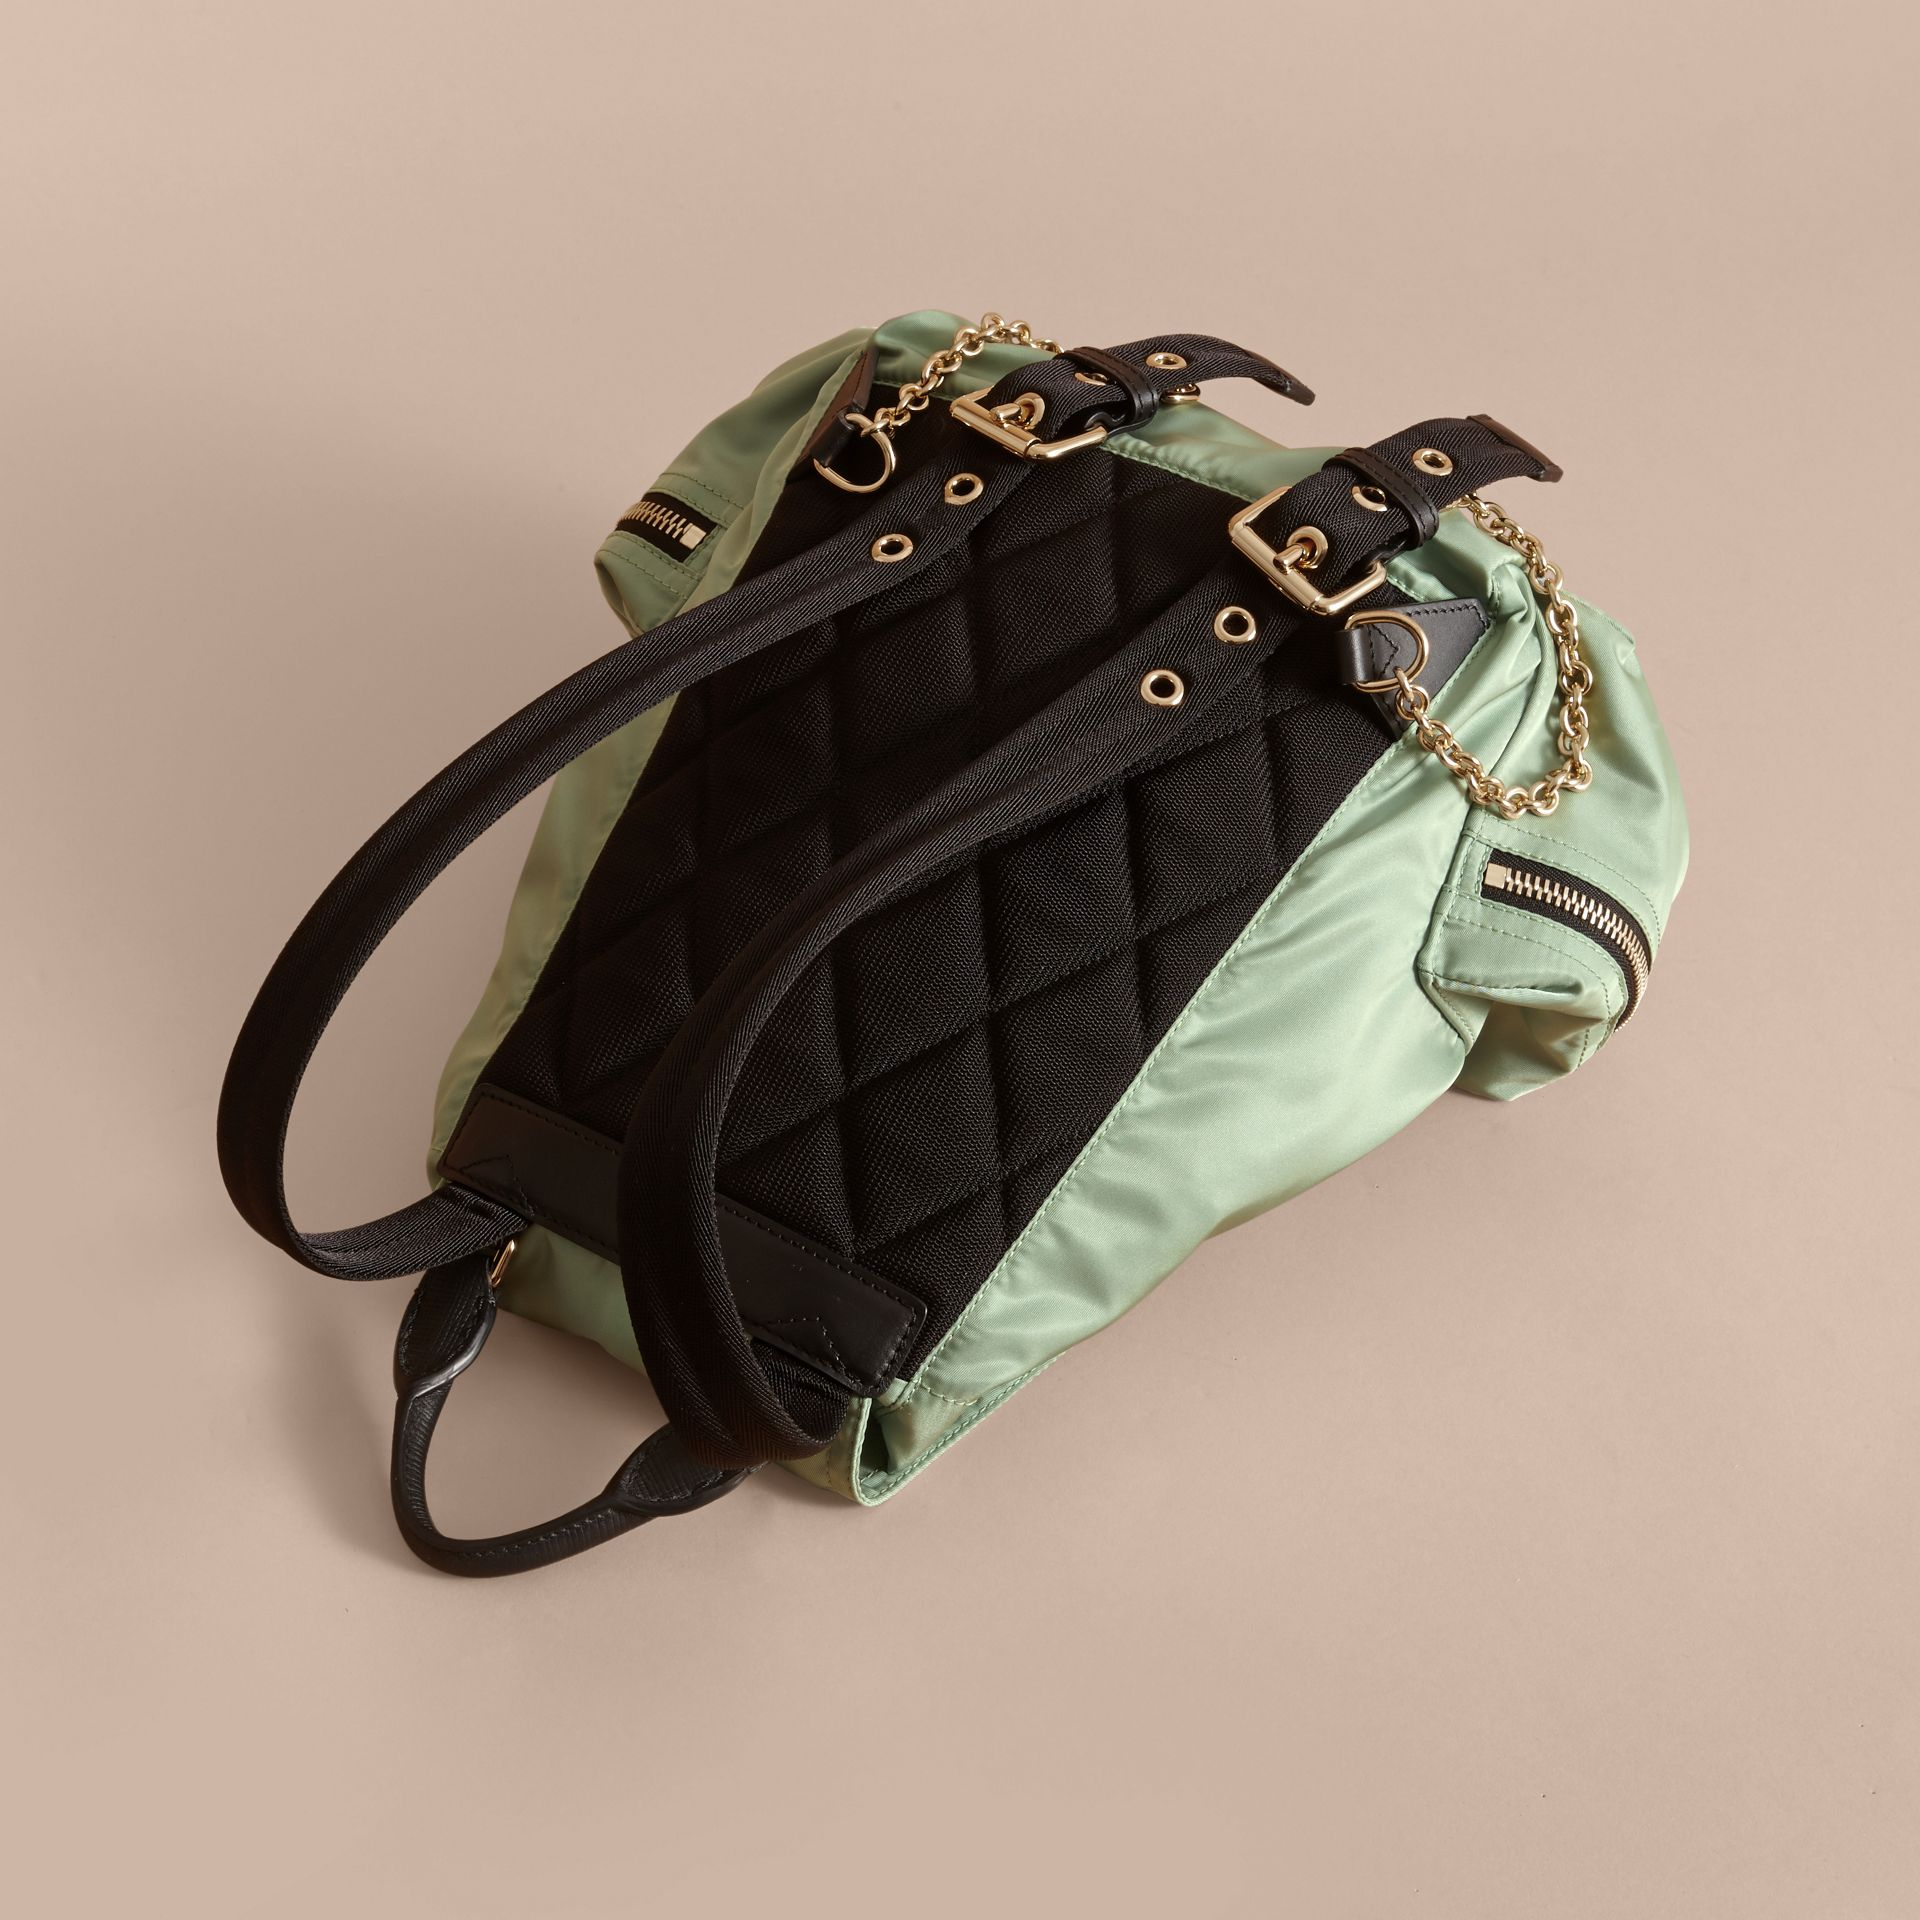 Sac The Rucksack medium en nylon technique et cuir (Vert Pomme) - Femme | Burberry - photo de la galerie 4